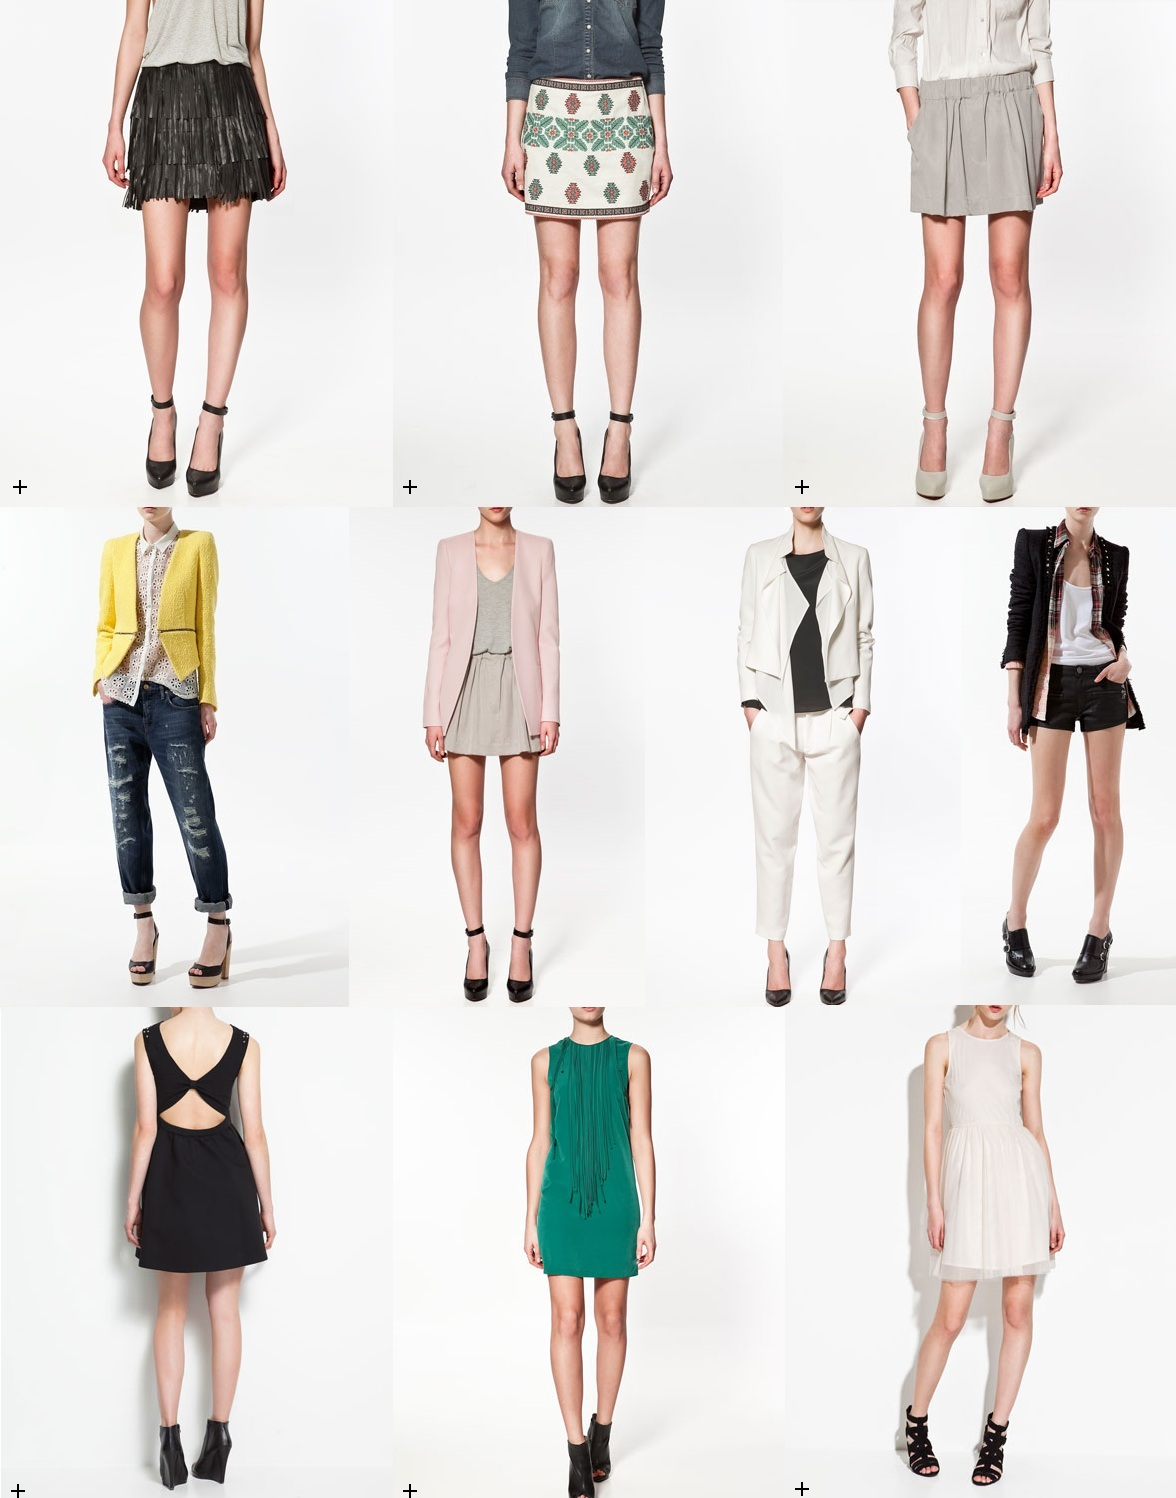 Zara SS12 collection - skirts, jackets and dresses